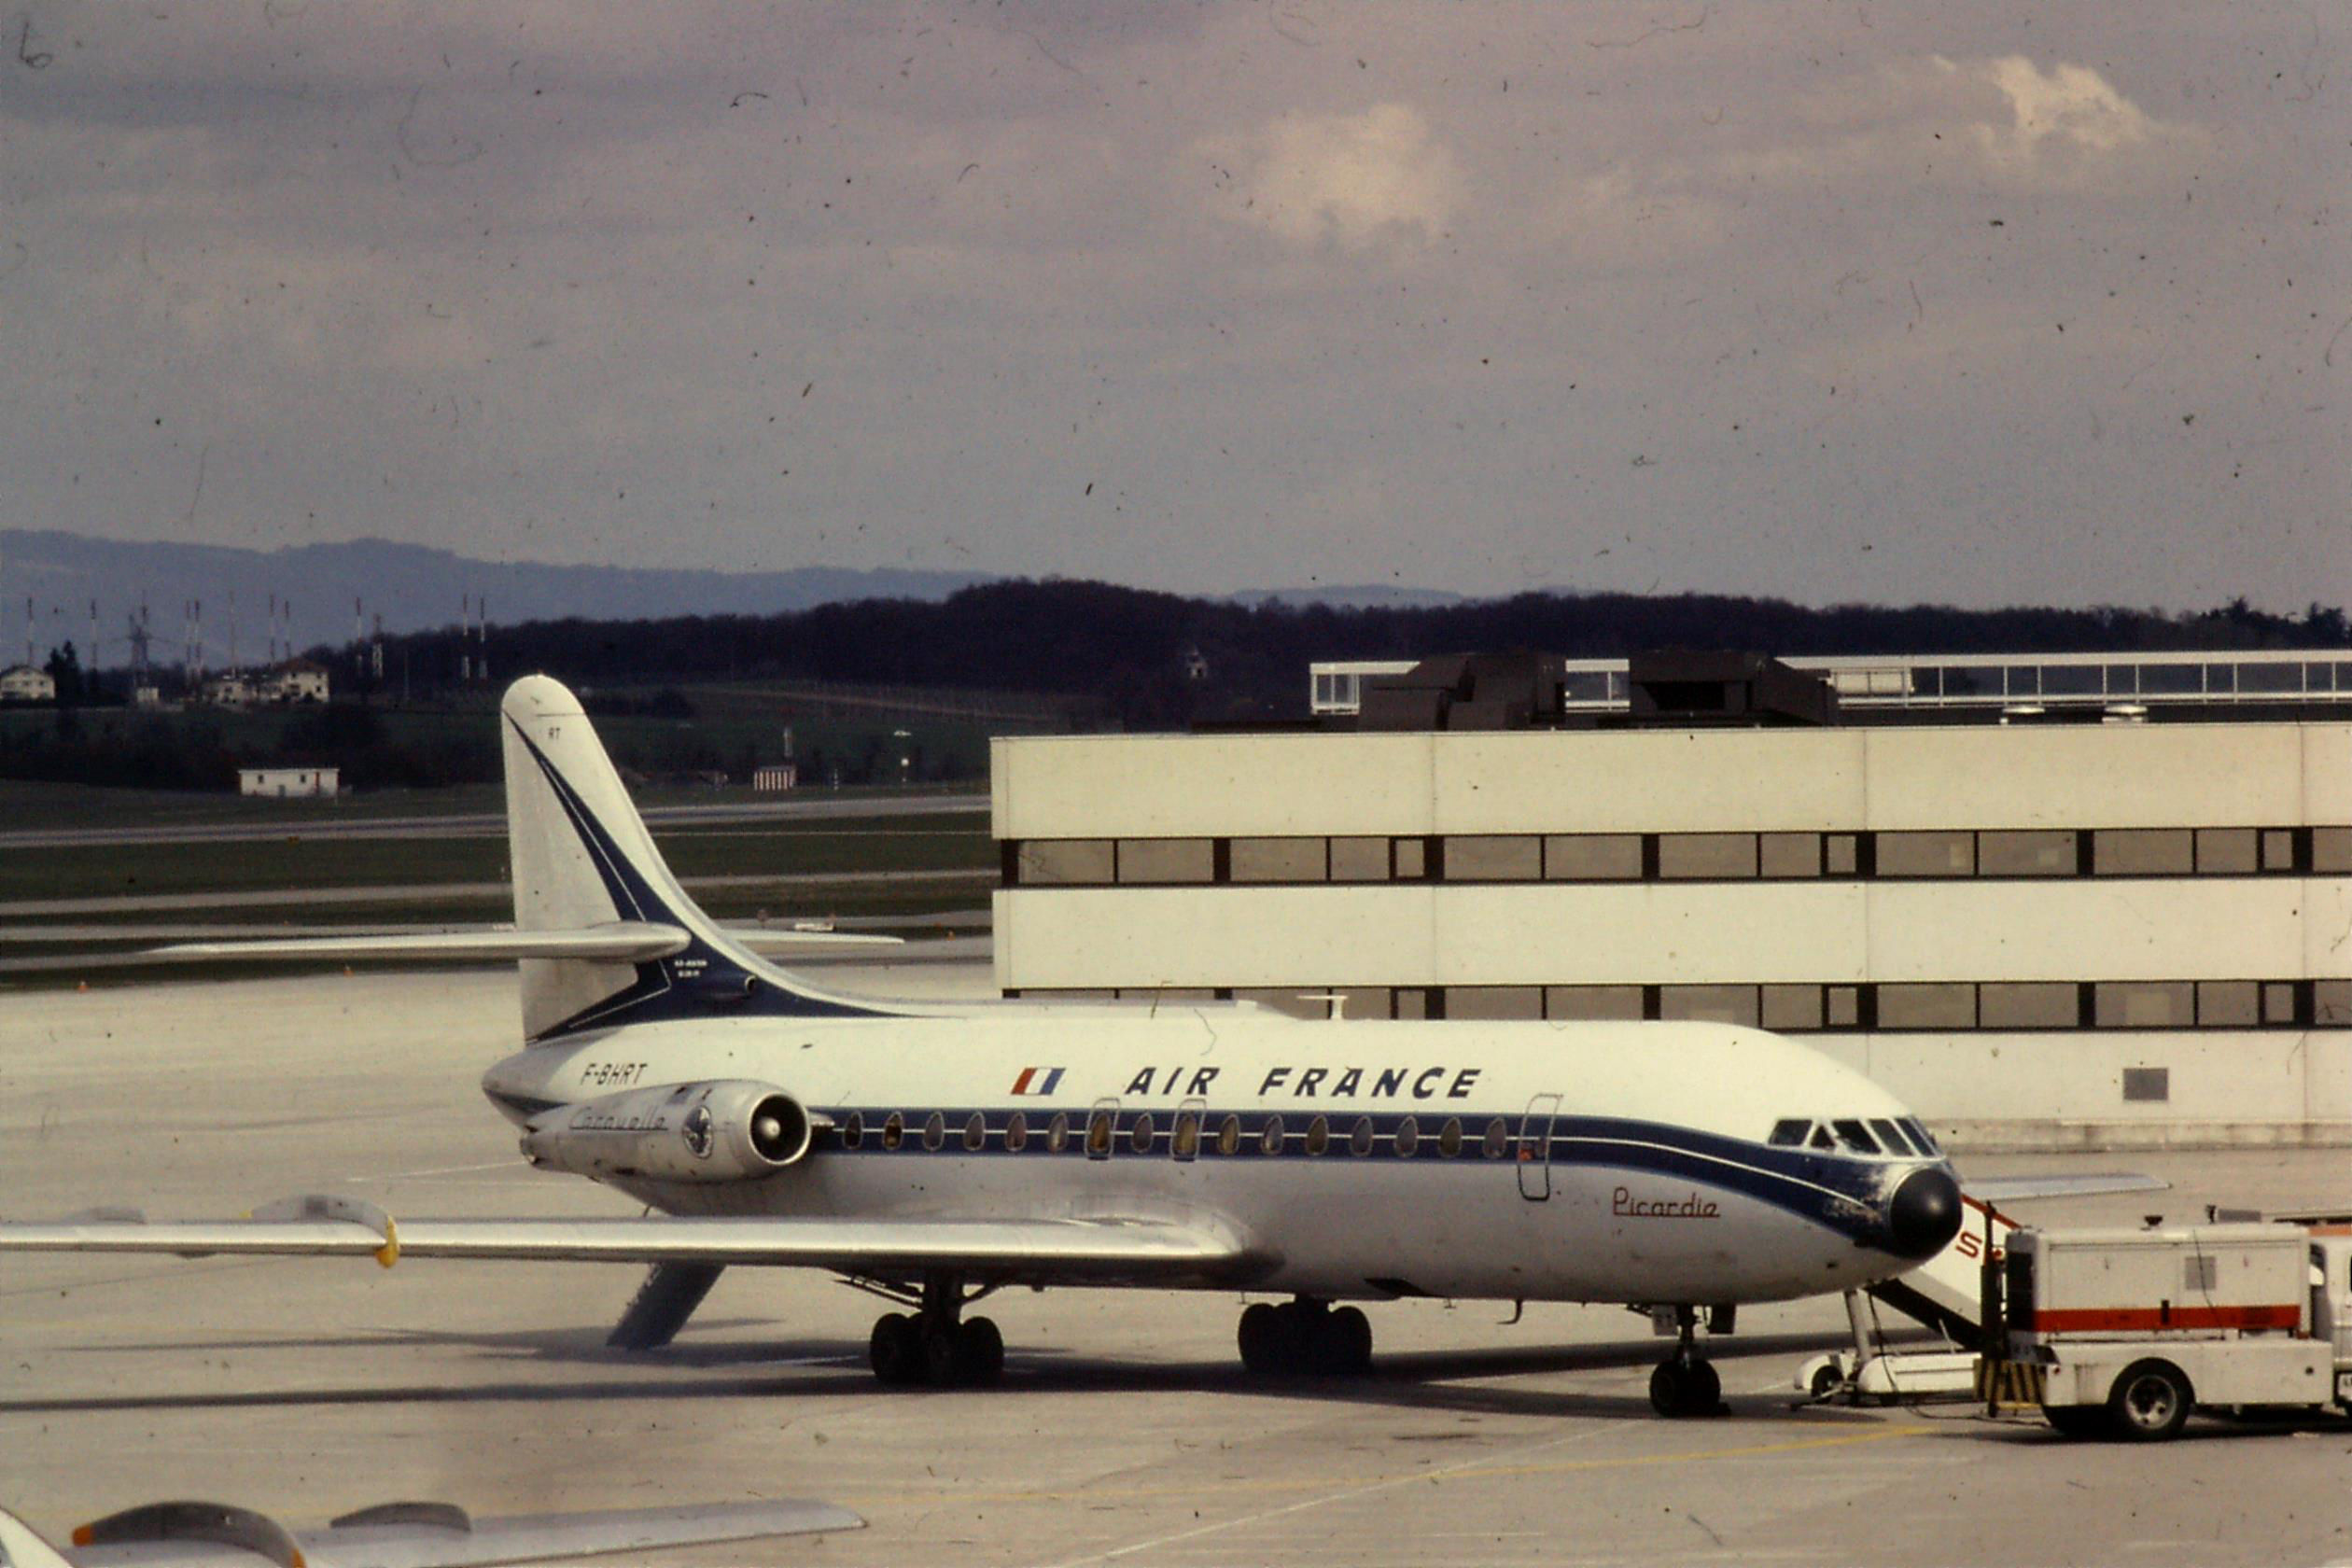 F-BHRT SE210 Caravelle III Air France